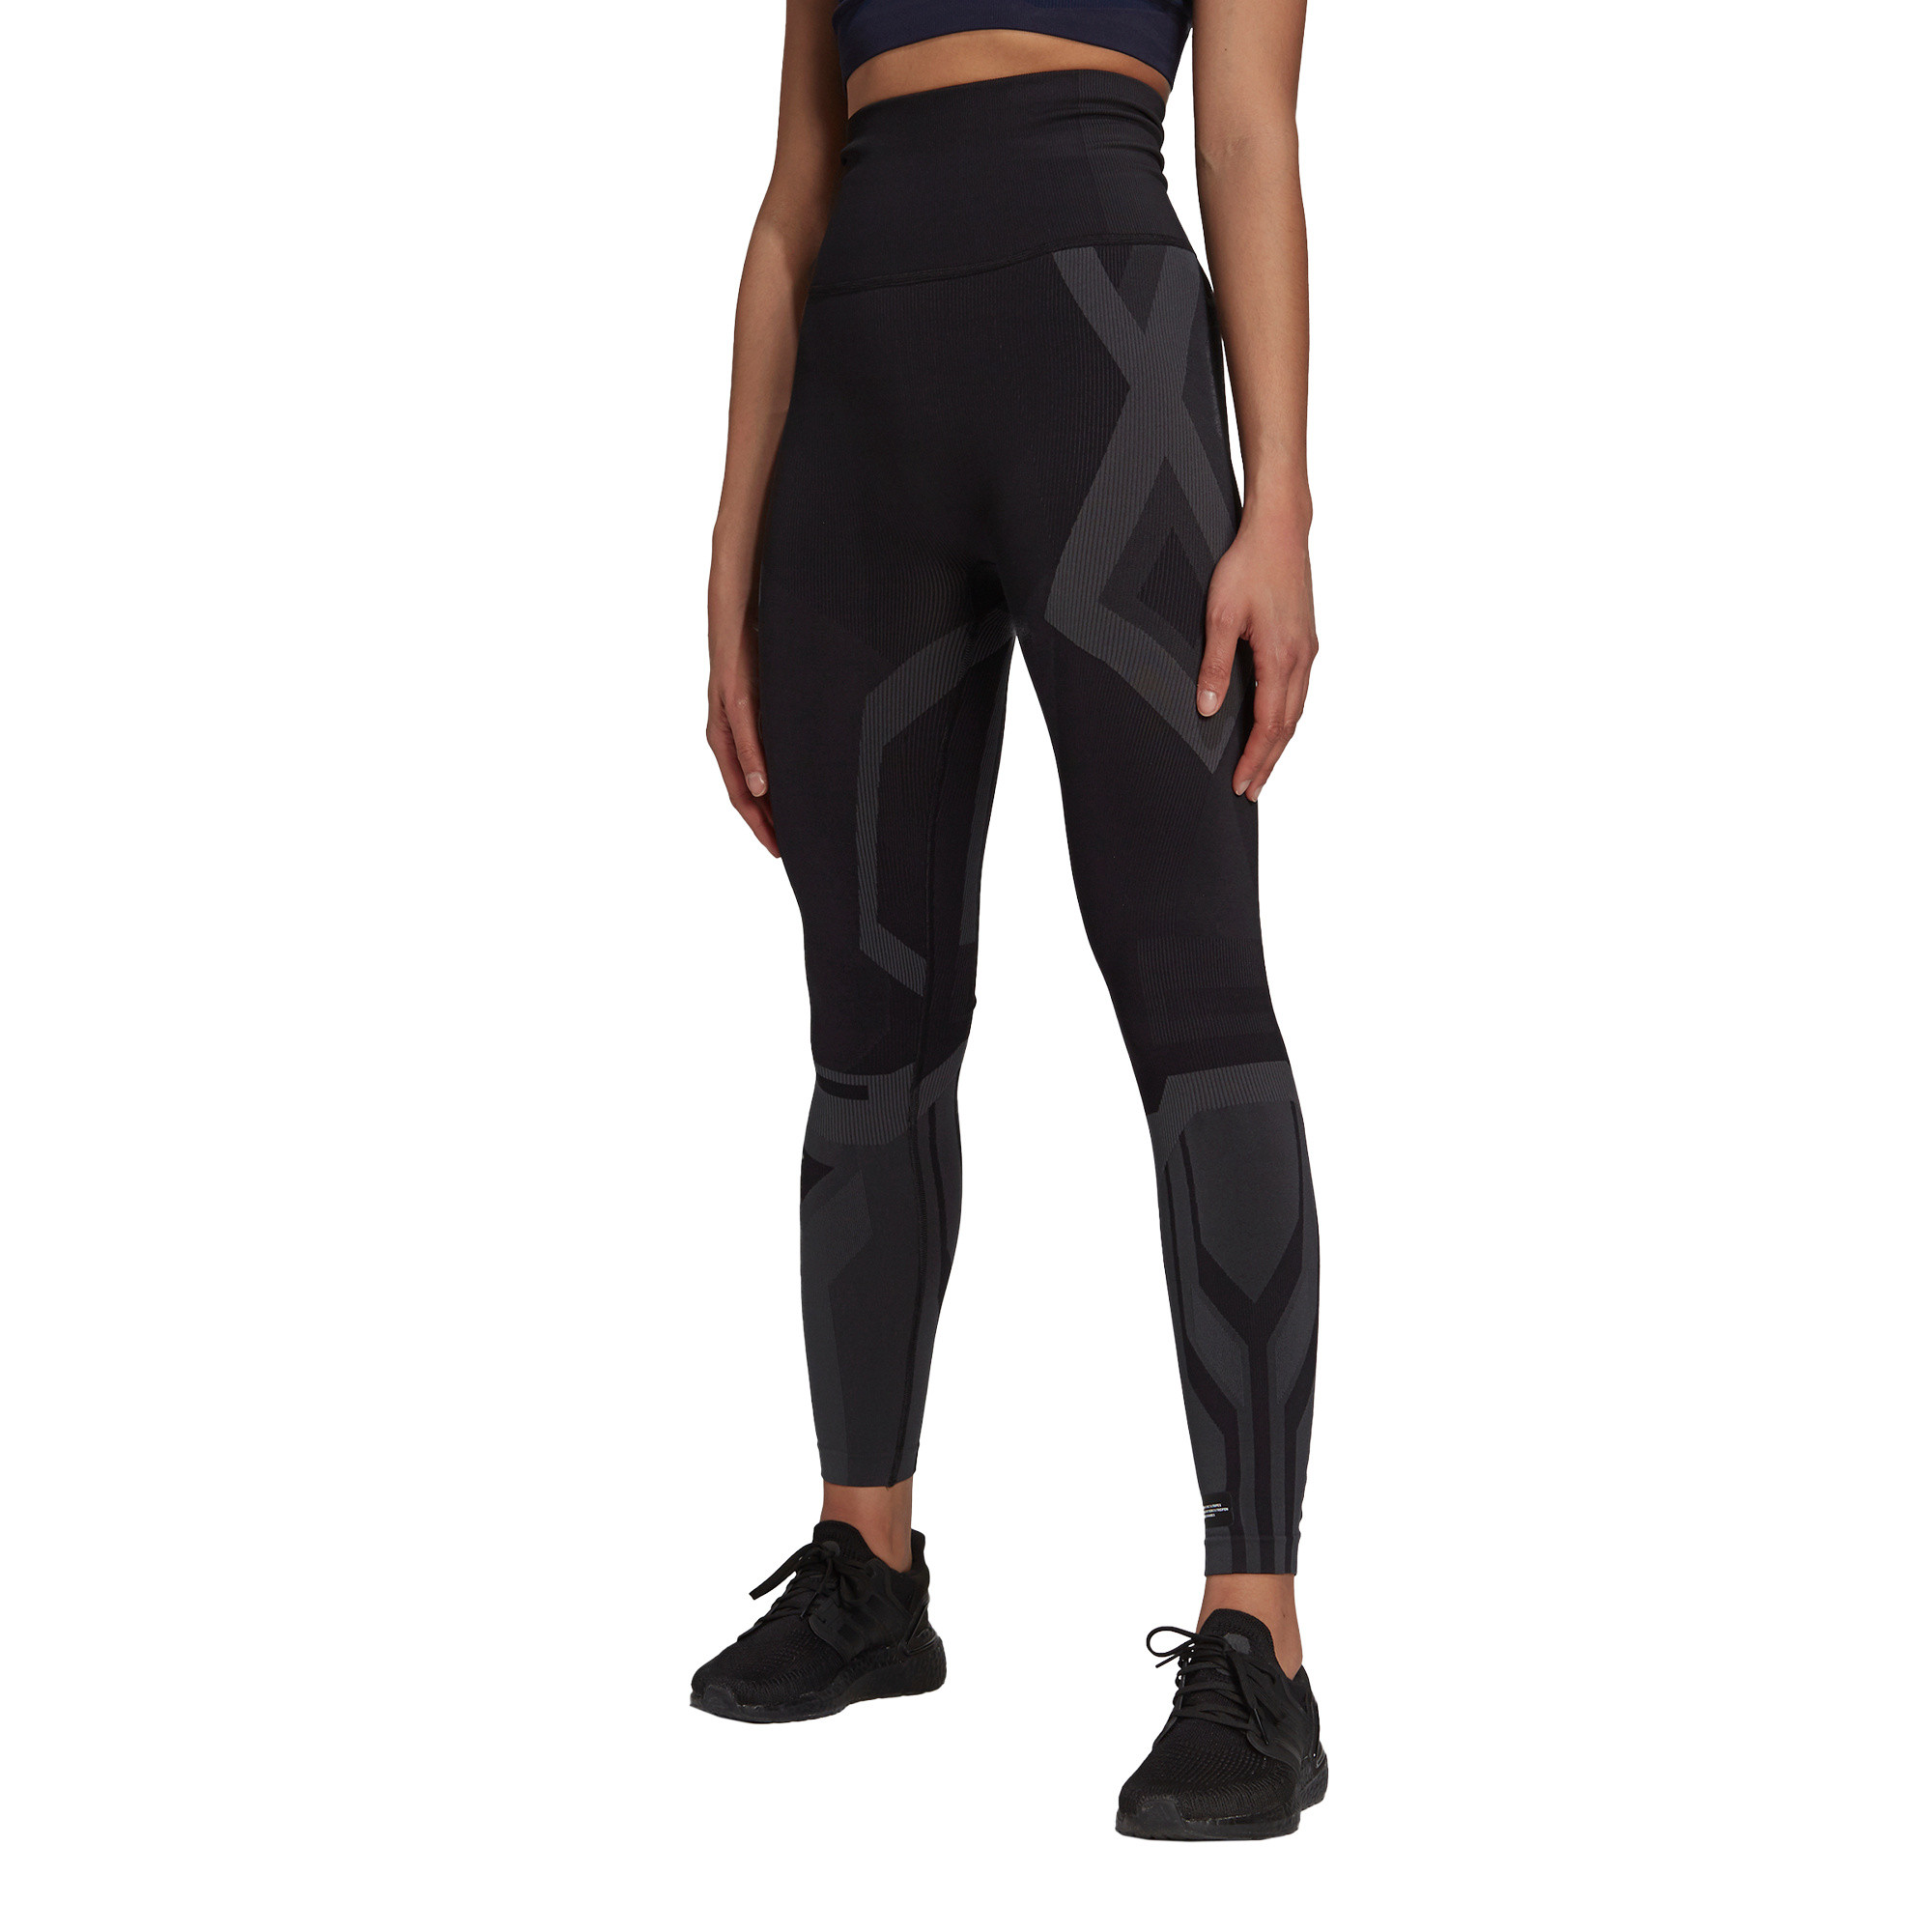 Tight Formotion Sculpt Two-Tone, Nero, large image number 0